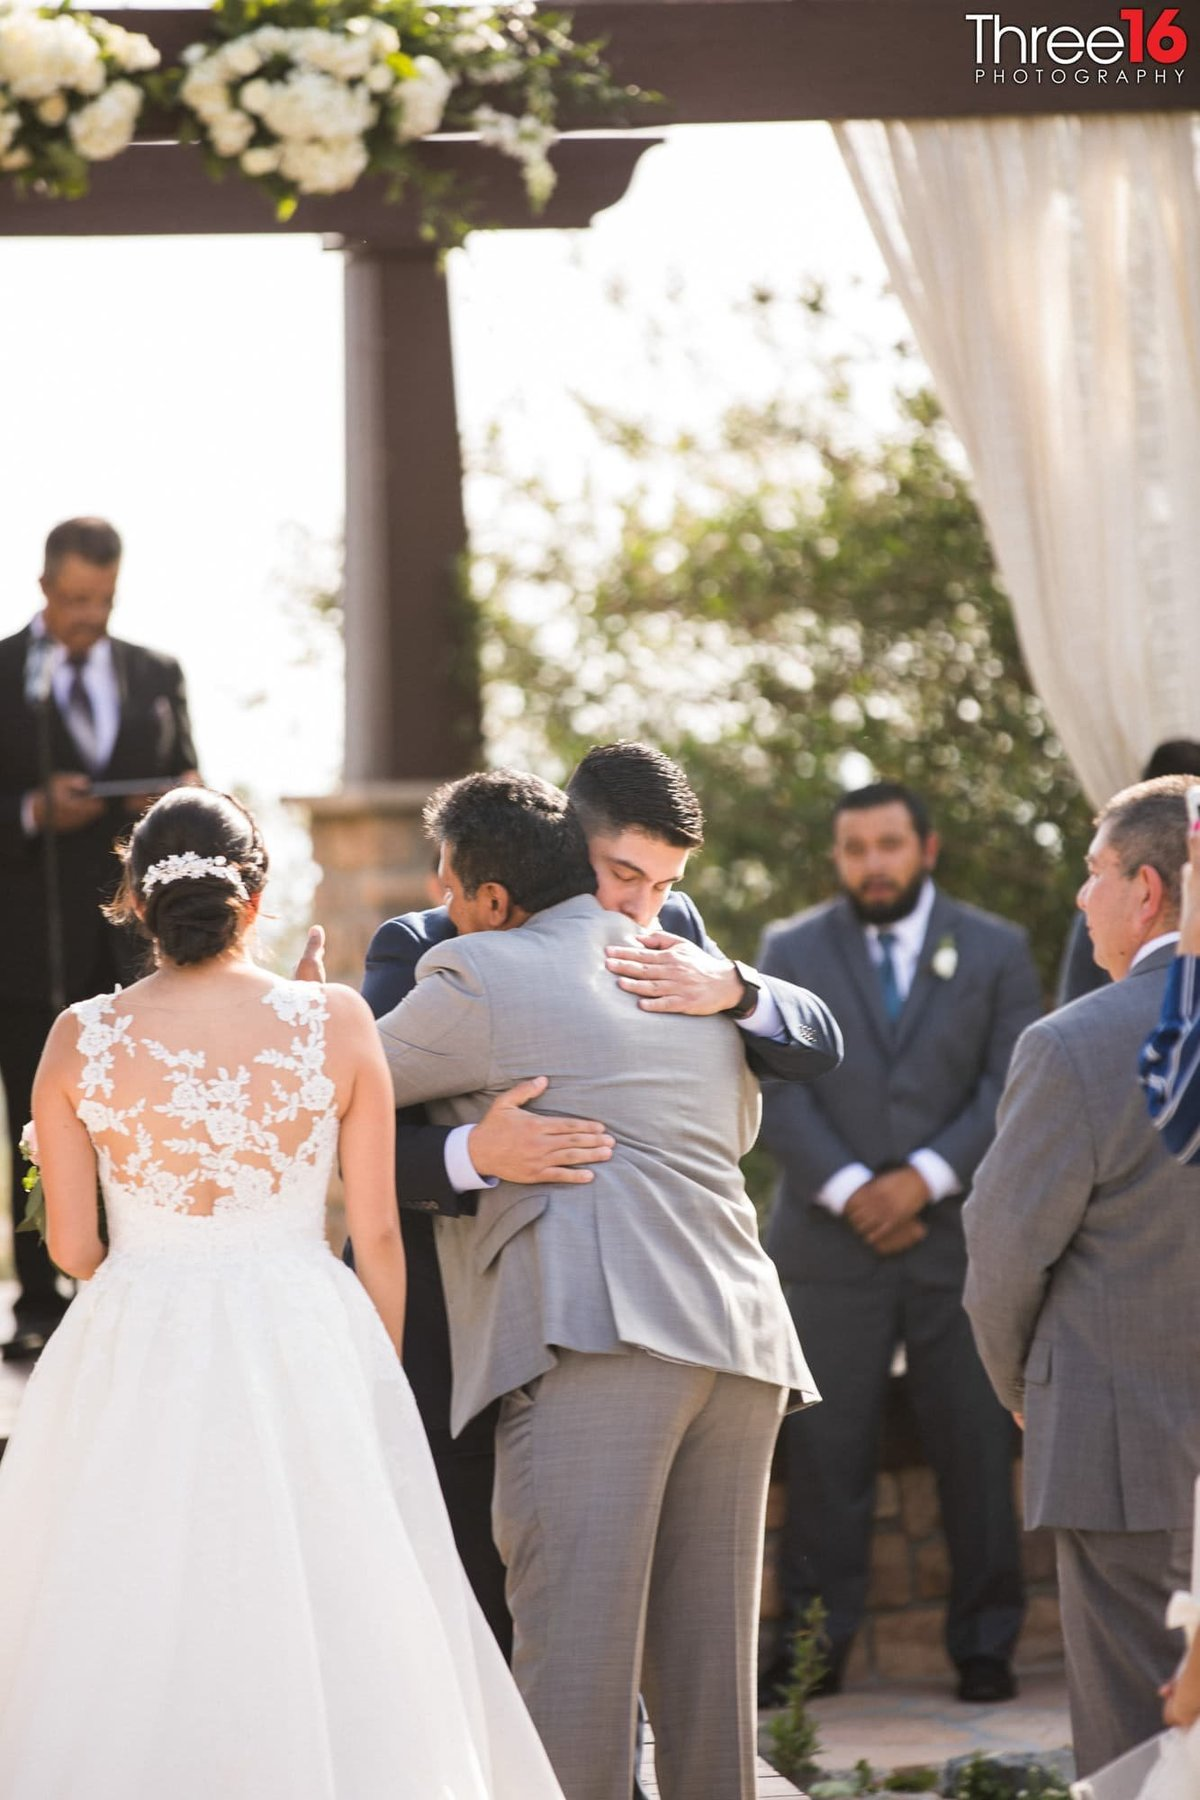 Father of the Bride hugs the Groom to be at the altar after handing his daughter to him